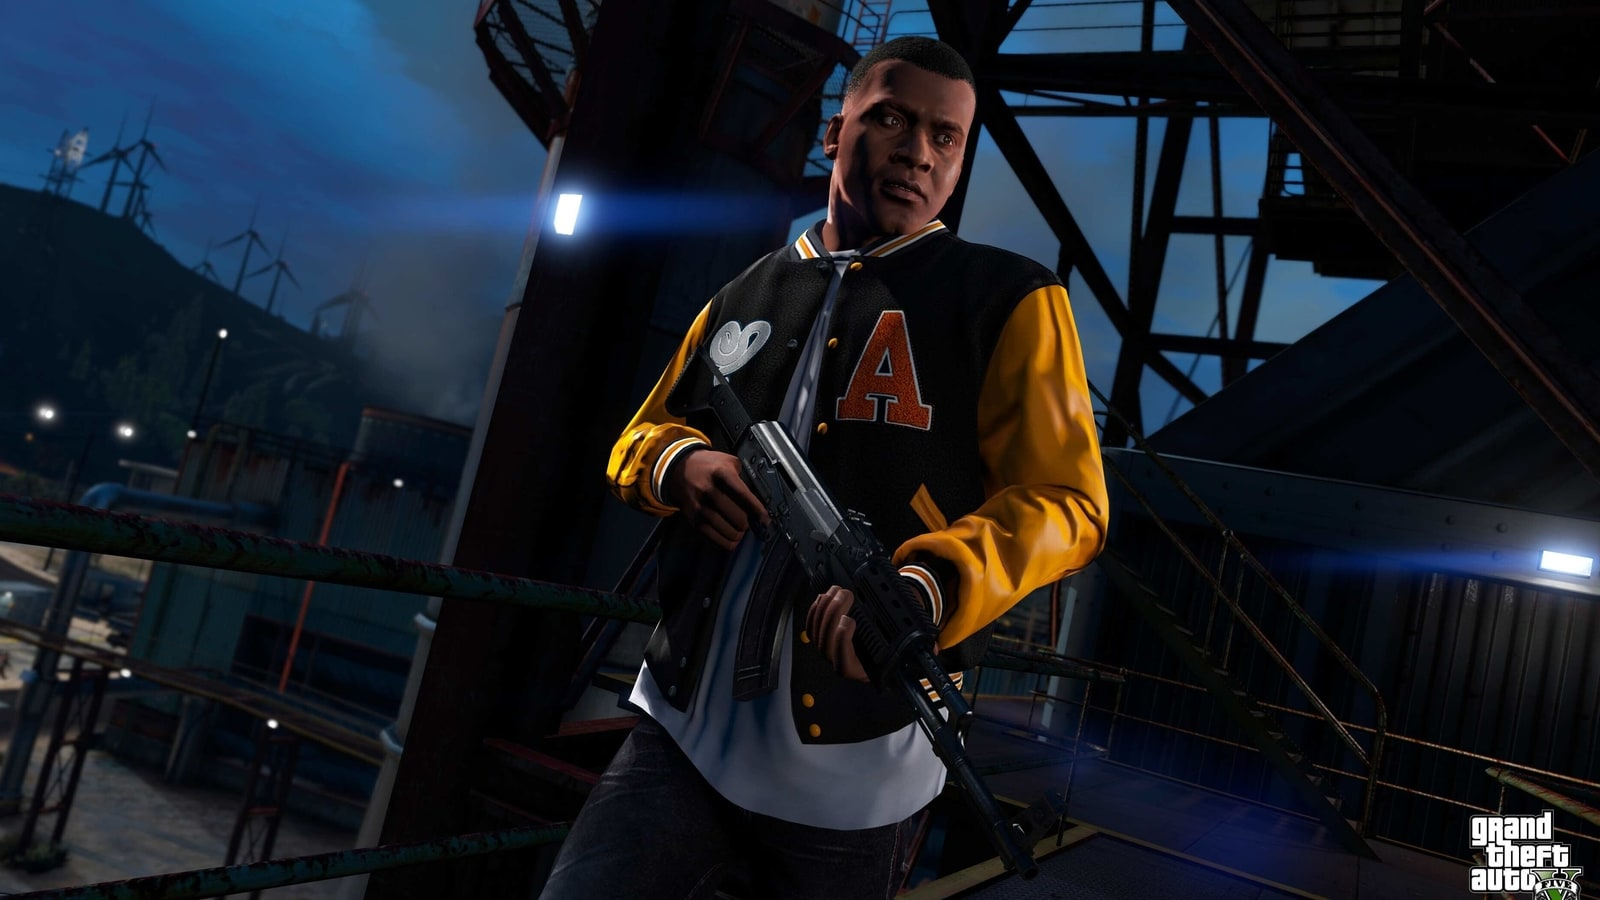 Grand Theft Auto: What distinguishes GTA Advance from GTA 3